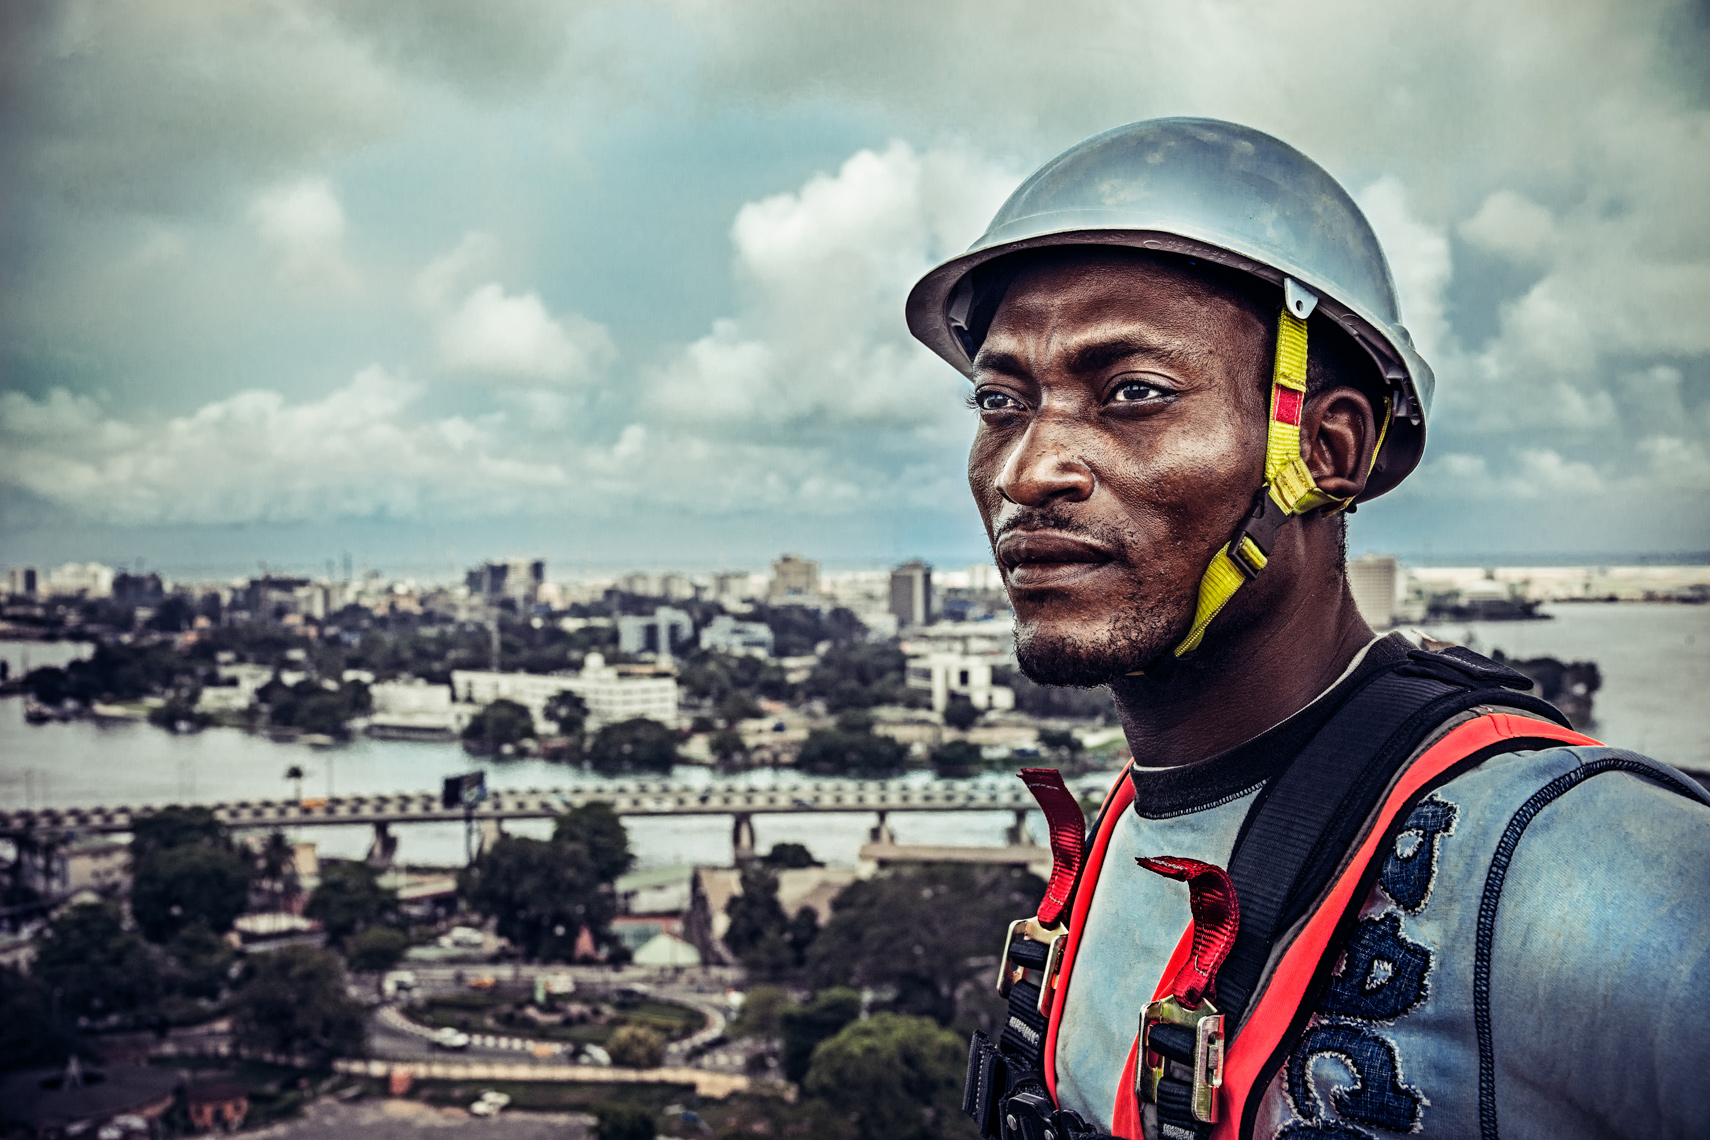 Nigerian construction worker portrait by commercial advertising photographer Michael-Grecco